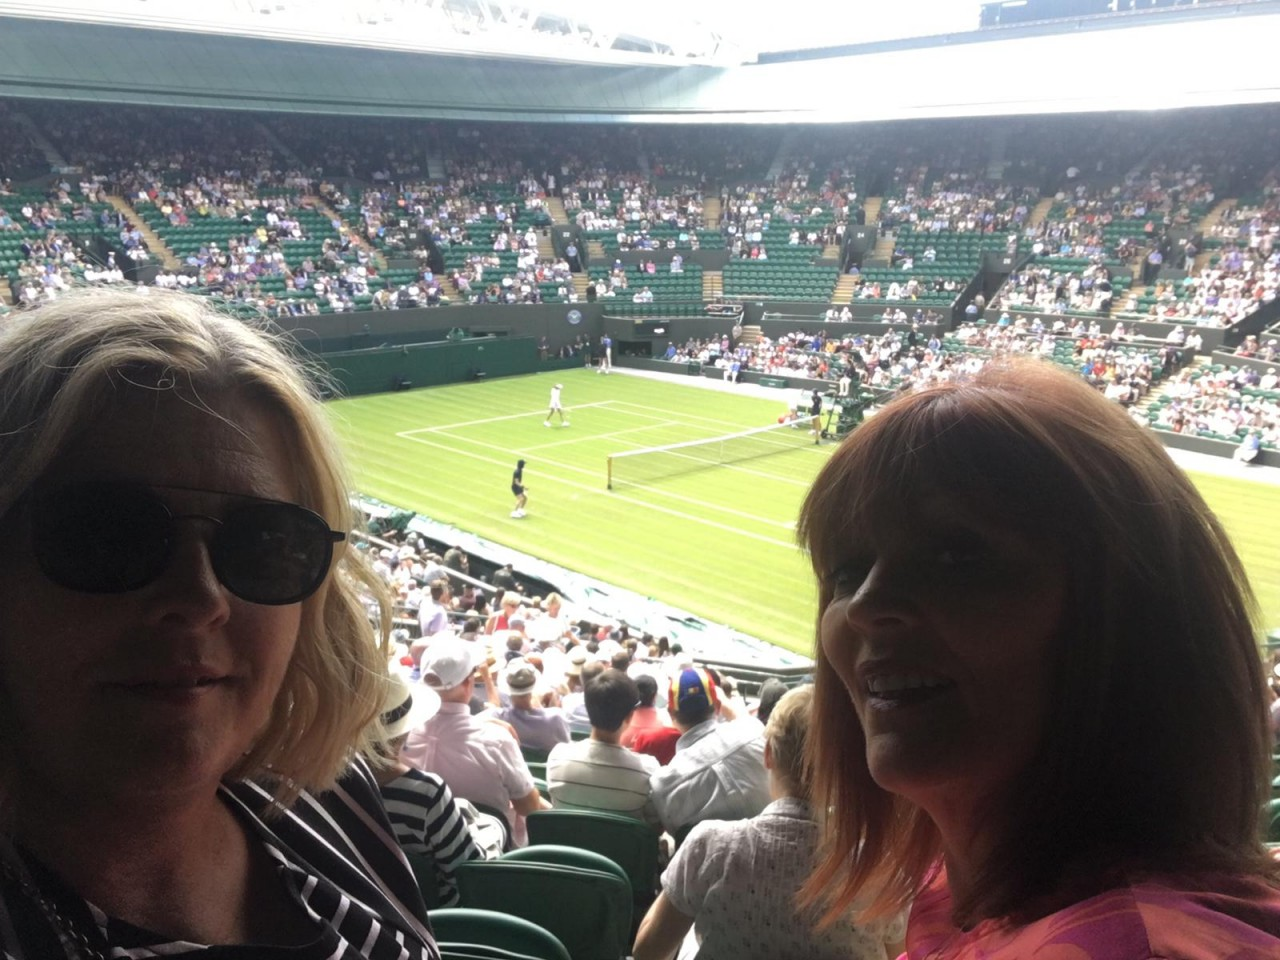 The Championships, Wimbledon 2022 - On Sale Now